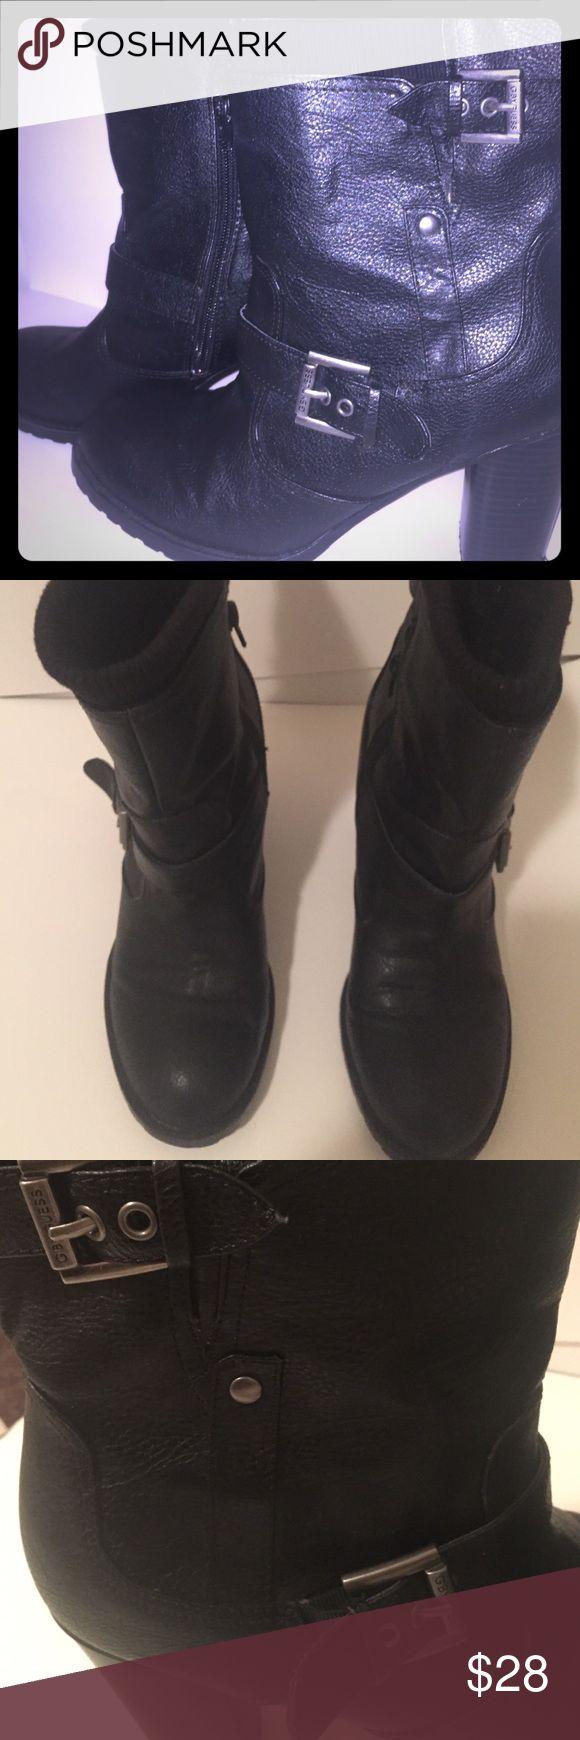 🎄GUESS booties/Free Gift with purchase!! G by Guess amazing well constructed black booties/ 💯% leather, 3.5 inch stacked heel. only worn 3 times. Thick rubber sole for winter weather! Buy these and I will throw in the Black Jessica McClintok Clutch! Happy Holidays! G by Guess Shoes Ankle Boots & Booties